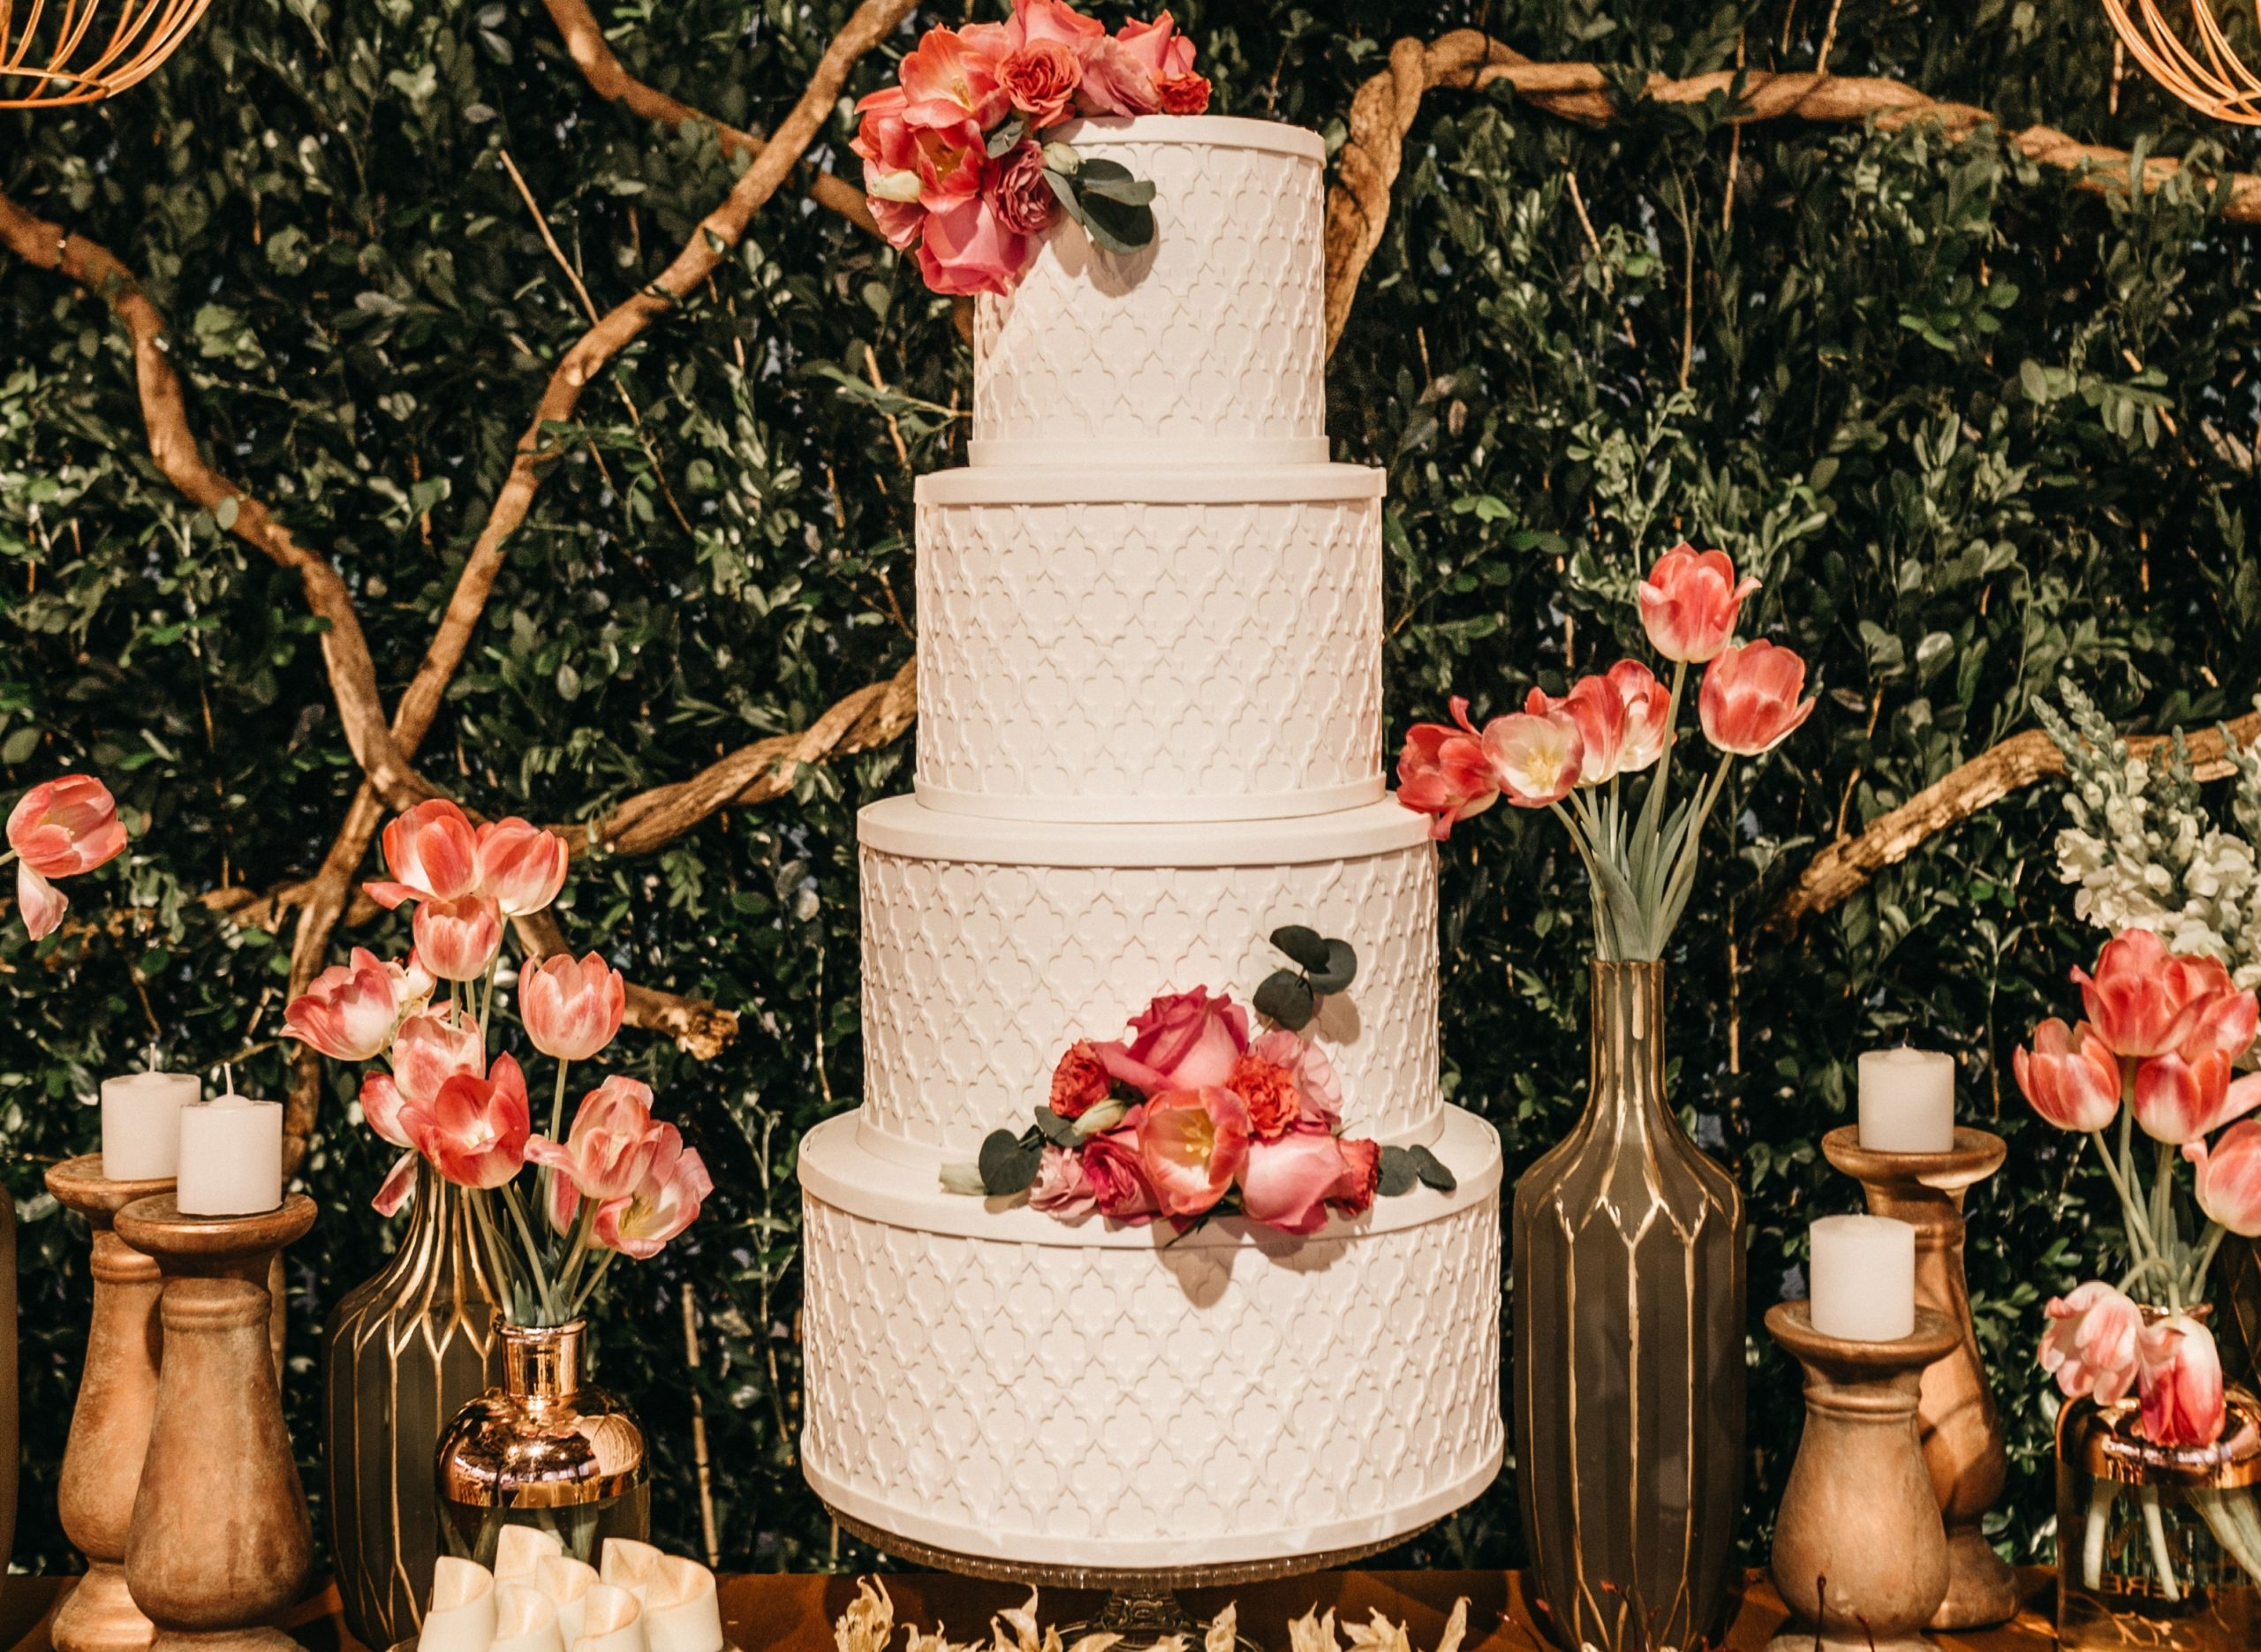 choisir son wedding cake - les moments m - wedding planner lyon